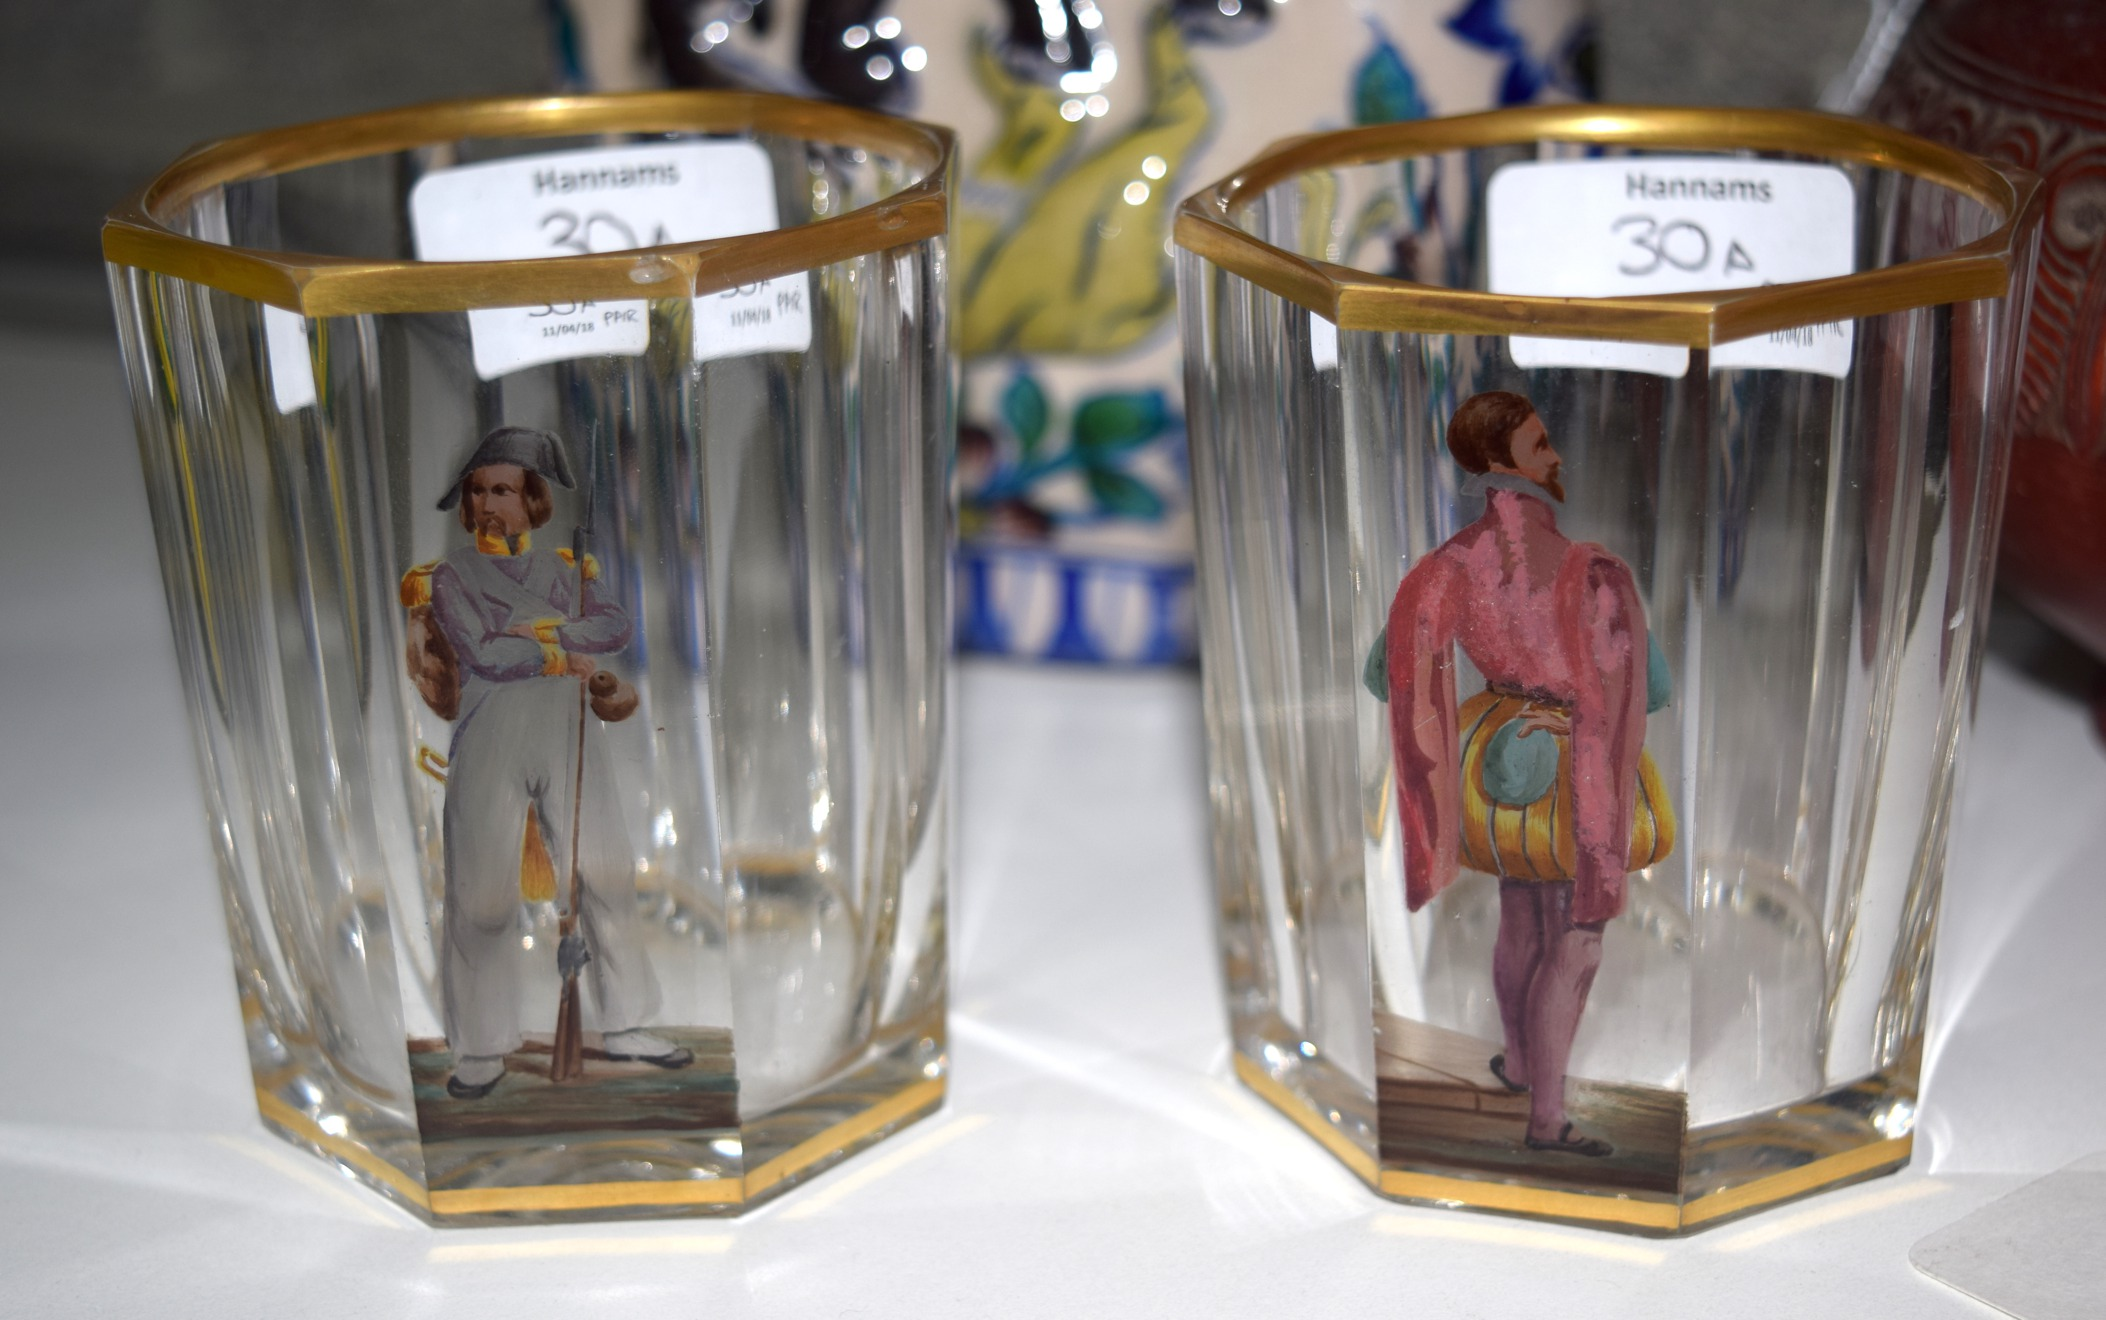 Lot 30A - AN UNUSUAL PAIR OF EARLY 19TH CENTURY AUSTRIAN OCTAGONAL GLASSES painted with a male within a